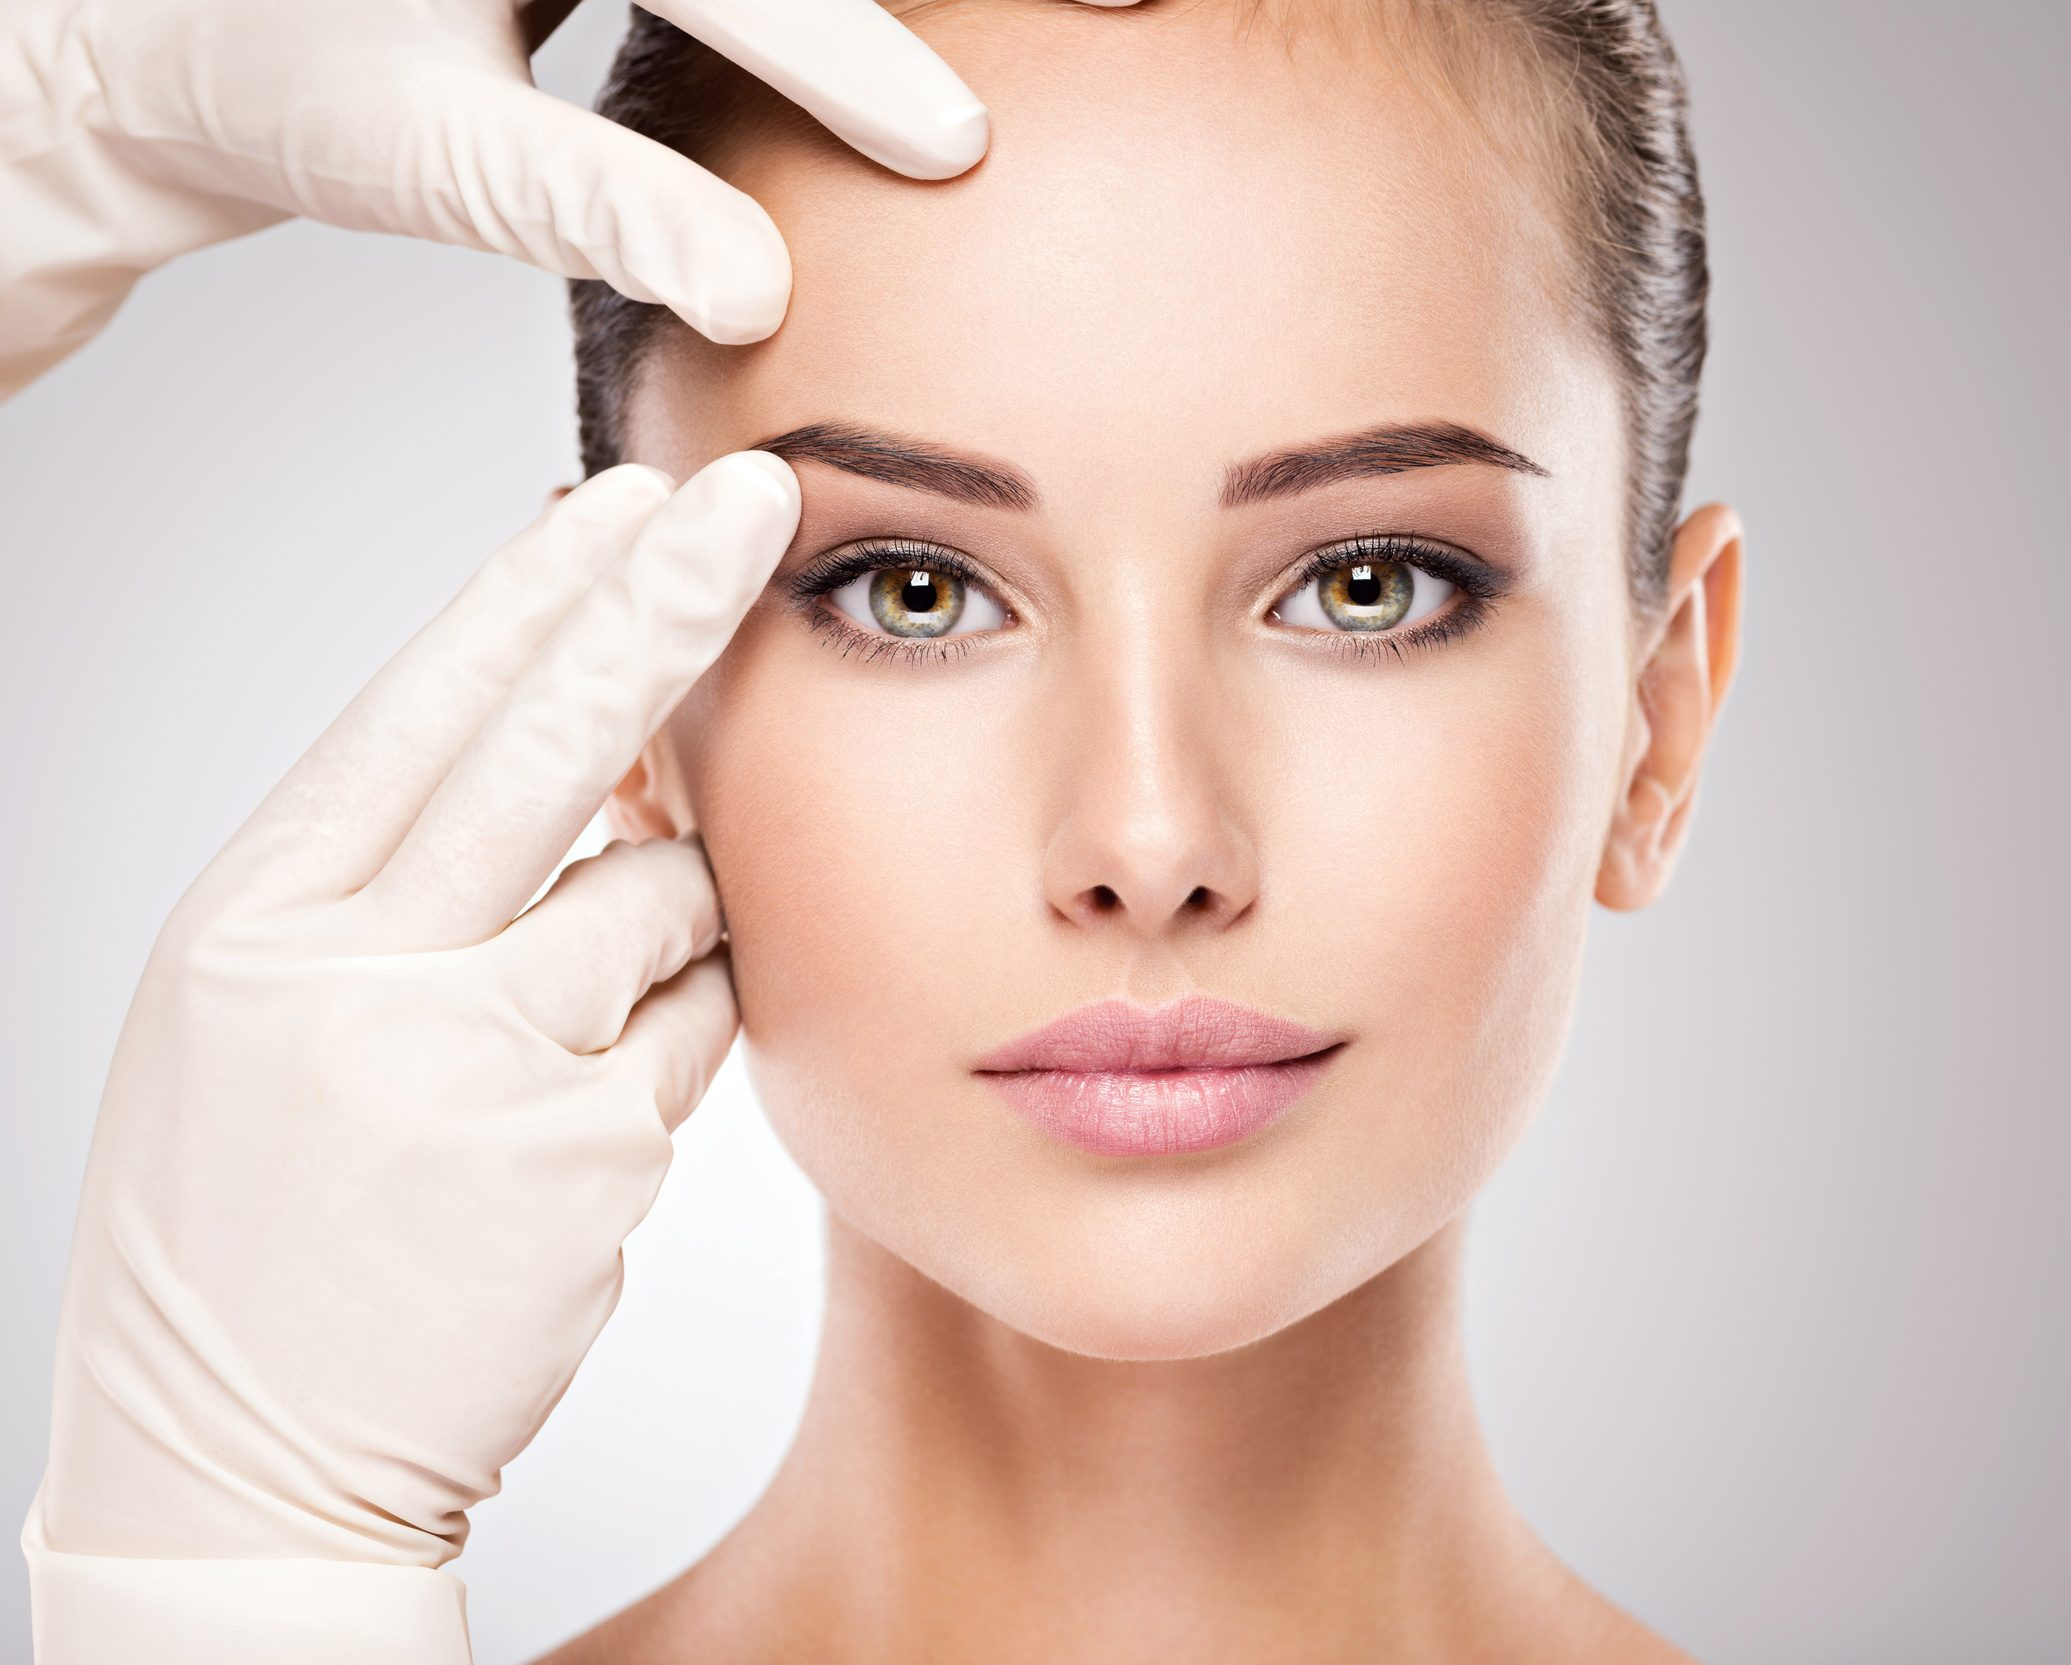 Face skin check before plastic surgery. Beautician touching woman face.